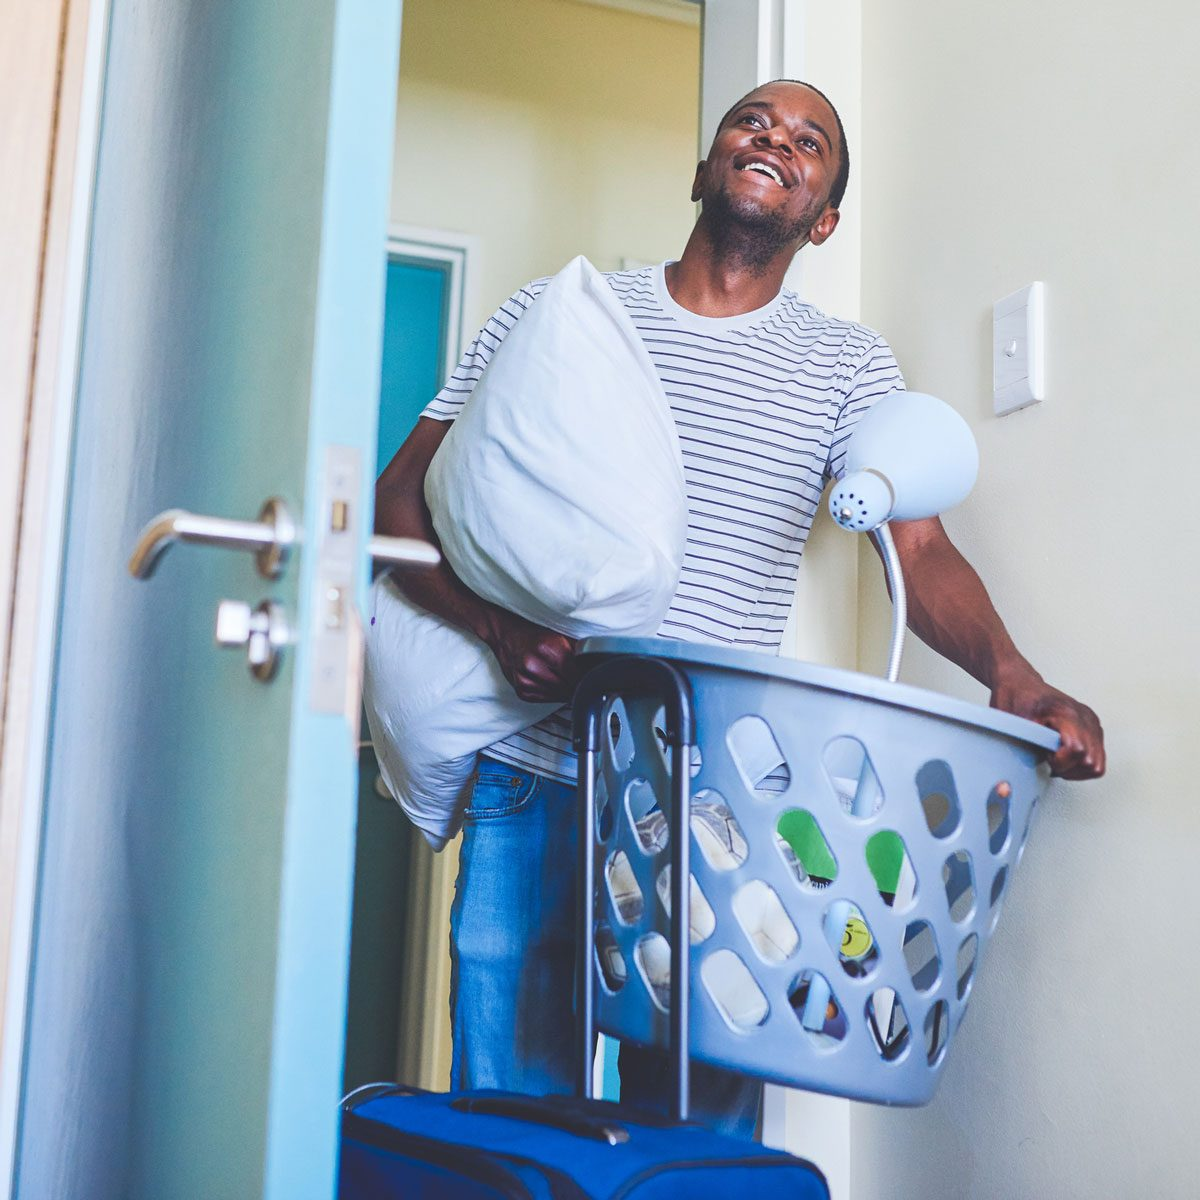 Student with a laundry basket of dorm supplies